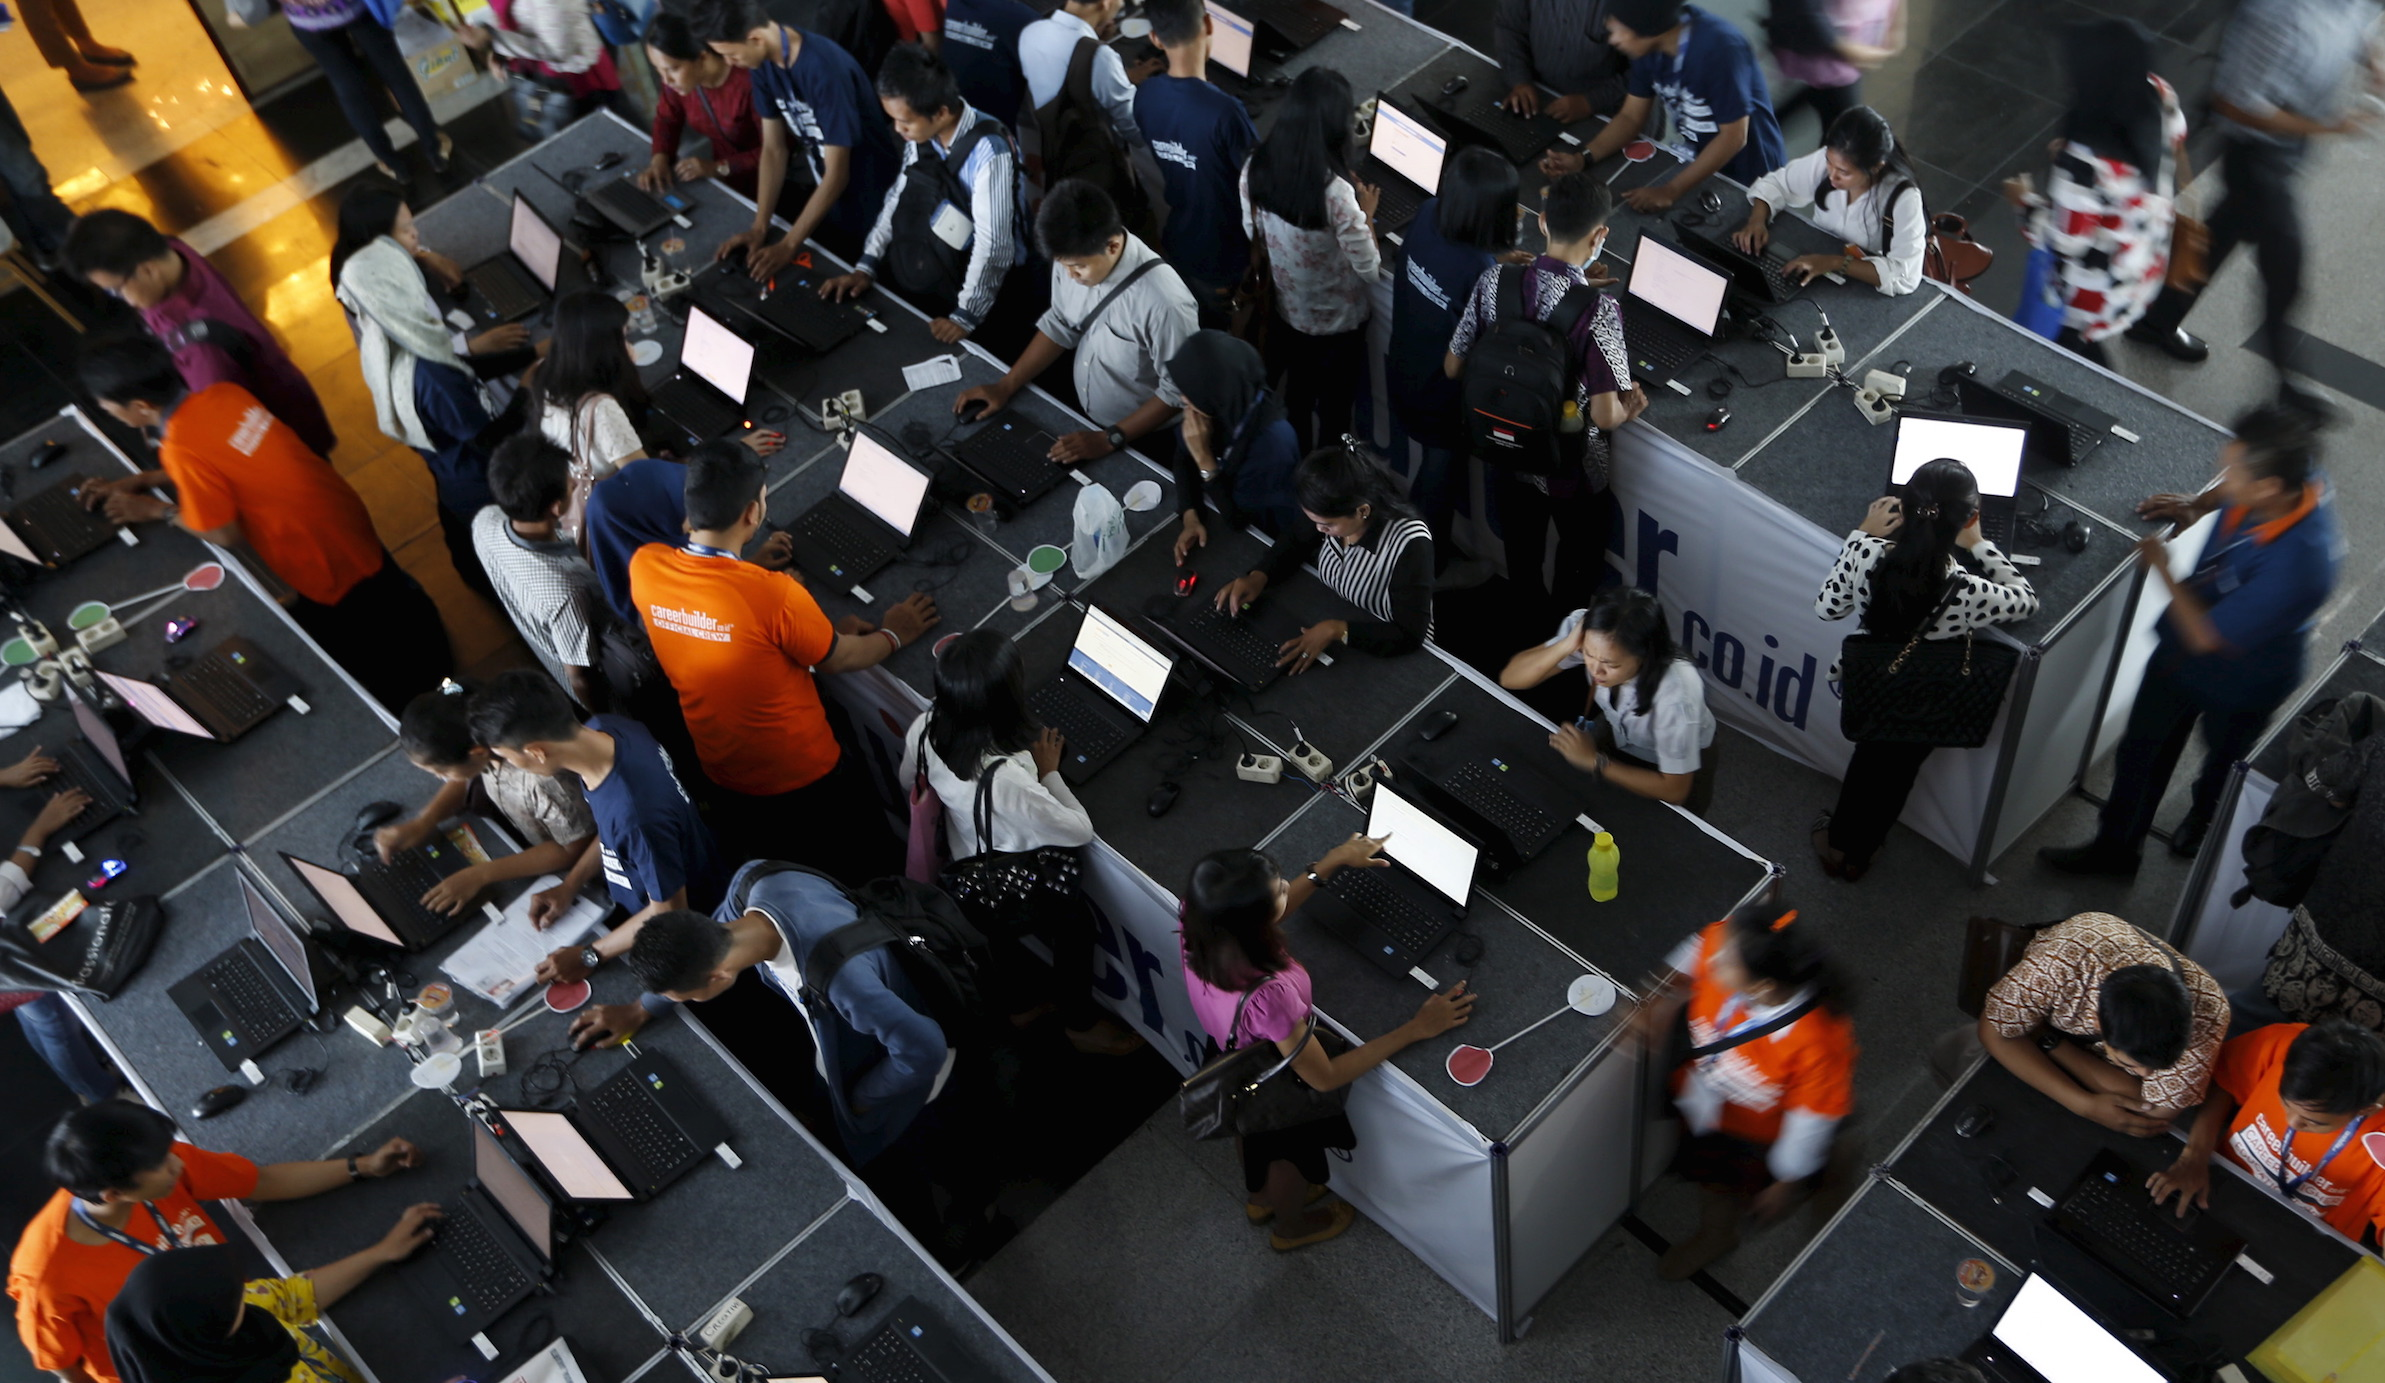 Indonesian youths fill up job application forms on laptops during the Career & Higher Education Fair in Jakarta, April 10, 2015.  After Indonesia was crushed in the Asian financial crisis - its economy shrank 13 percent in 1998 - the battered rupiah helped it start to export its way back to growth. Now, Southeast Asia's biggest economy is growing at its slowest pace in five years, 5 percent, and the currency recently tumbled to its weakest since 1998. The rupiah's 9.3 percent slide against the dollar since June should help Indonesian manufacturers who export clothes, shoes and other products cut prices and win orders. But it isn't working that way, due to Indonesia's rising wage costs and other factors. Problems with infrastructure and bureaucracy have added to pessimism that factories can lift exports and give Indonesia a boost it needs as the coal and commodity boom which fueled growth for years is history. REUTERS/Beawiharta - RTR4WR6J